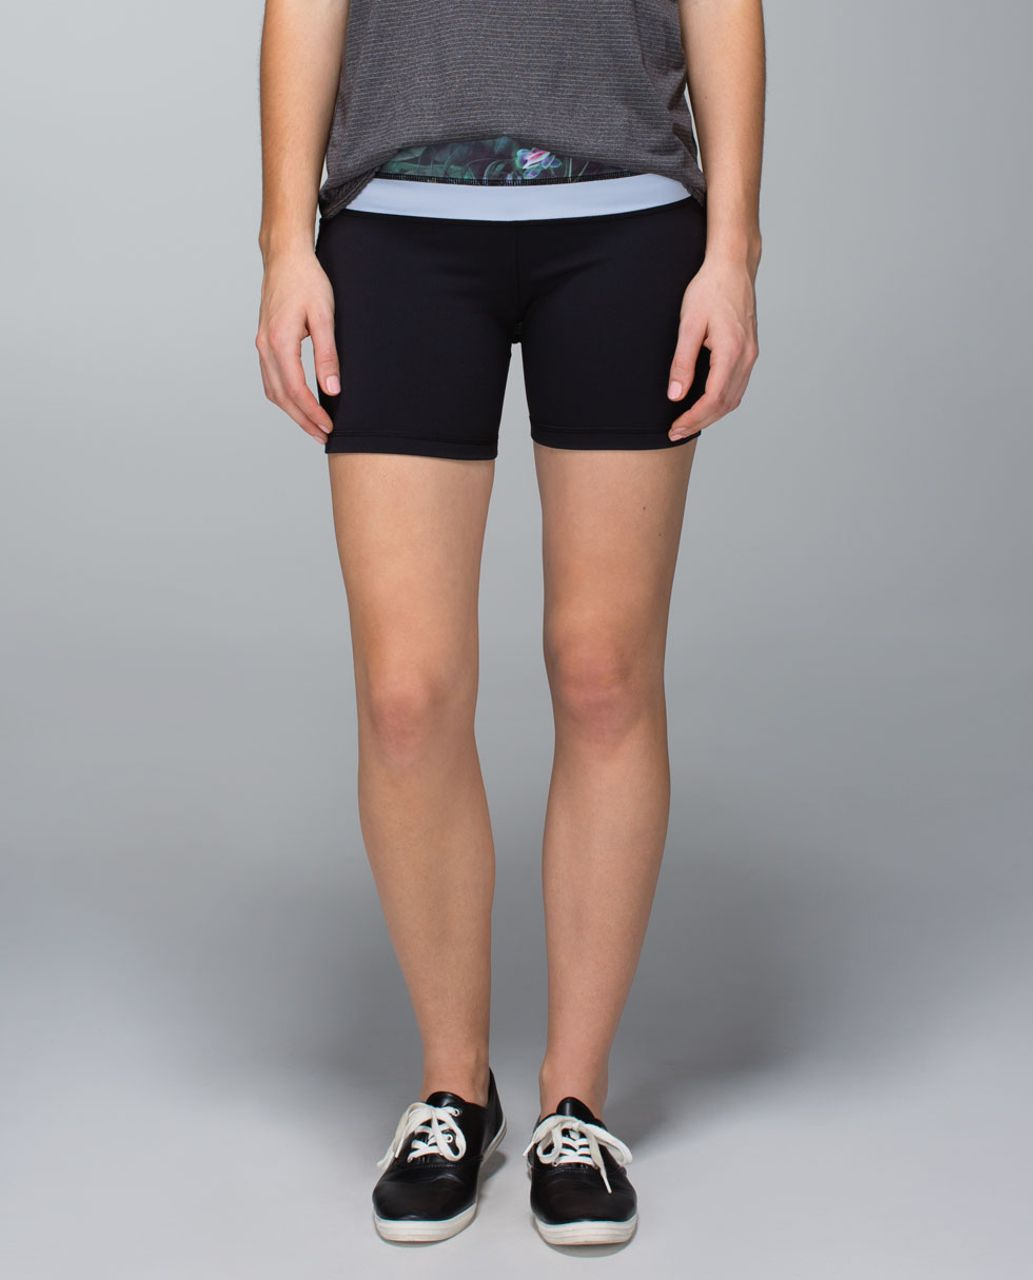 Lululemon Groove Short *Full-On Luon (Regular) - Black / Curious Jungle Multi / Cool Breeze